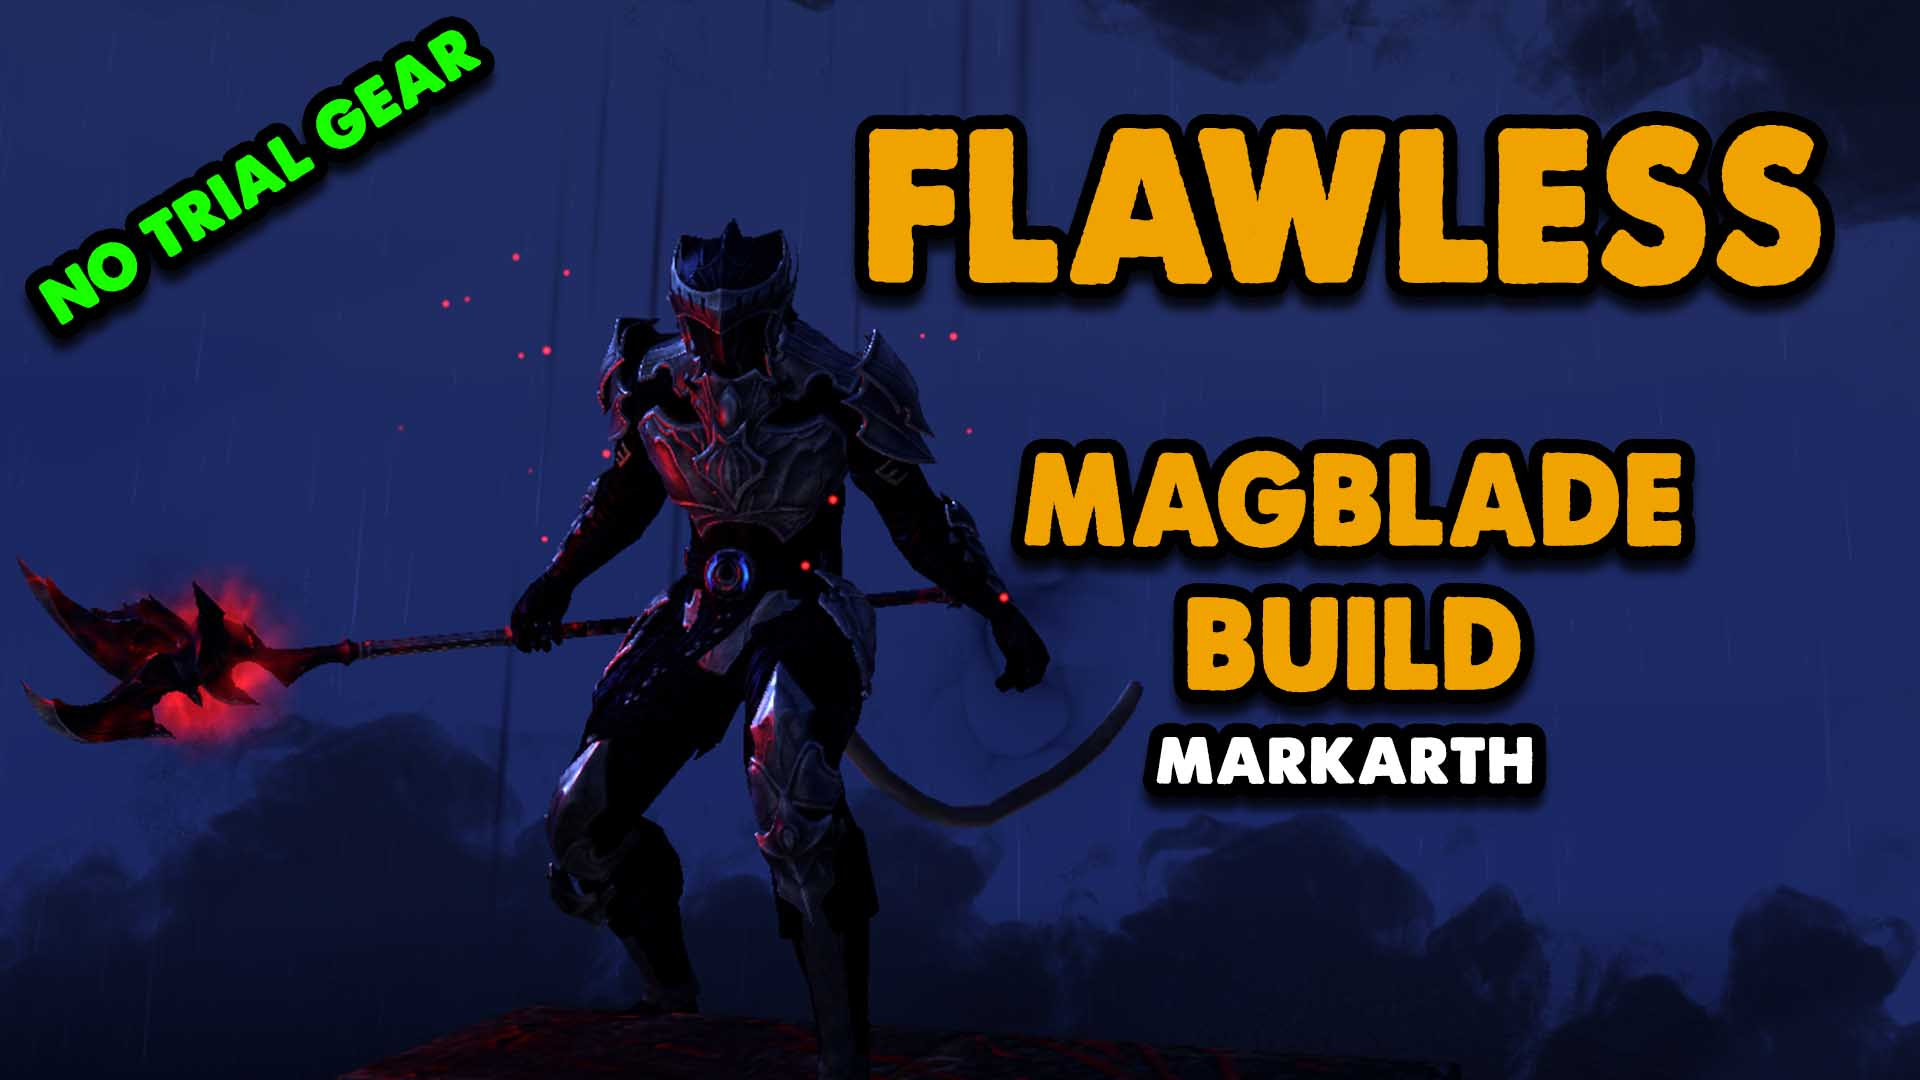 flawless, nightblade, vma, trial, dungeon, xynode, xynode gaming, magblade, eso magblade build, eso best magblade build 2020,